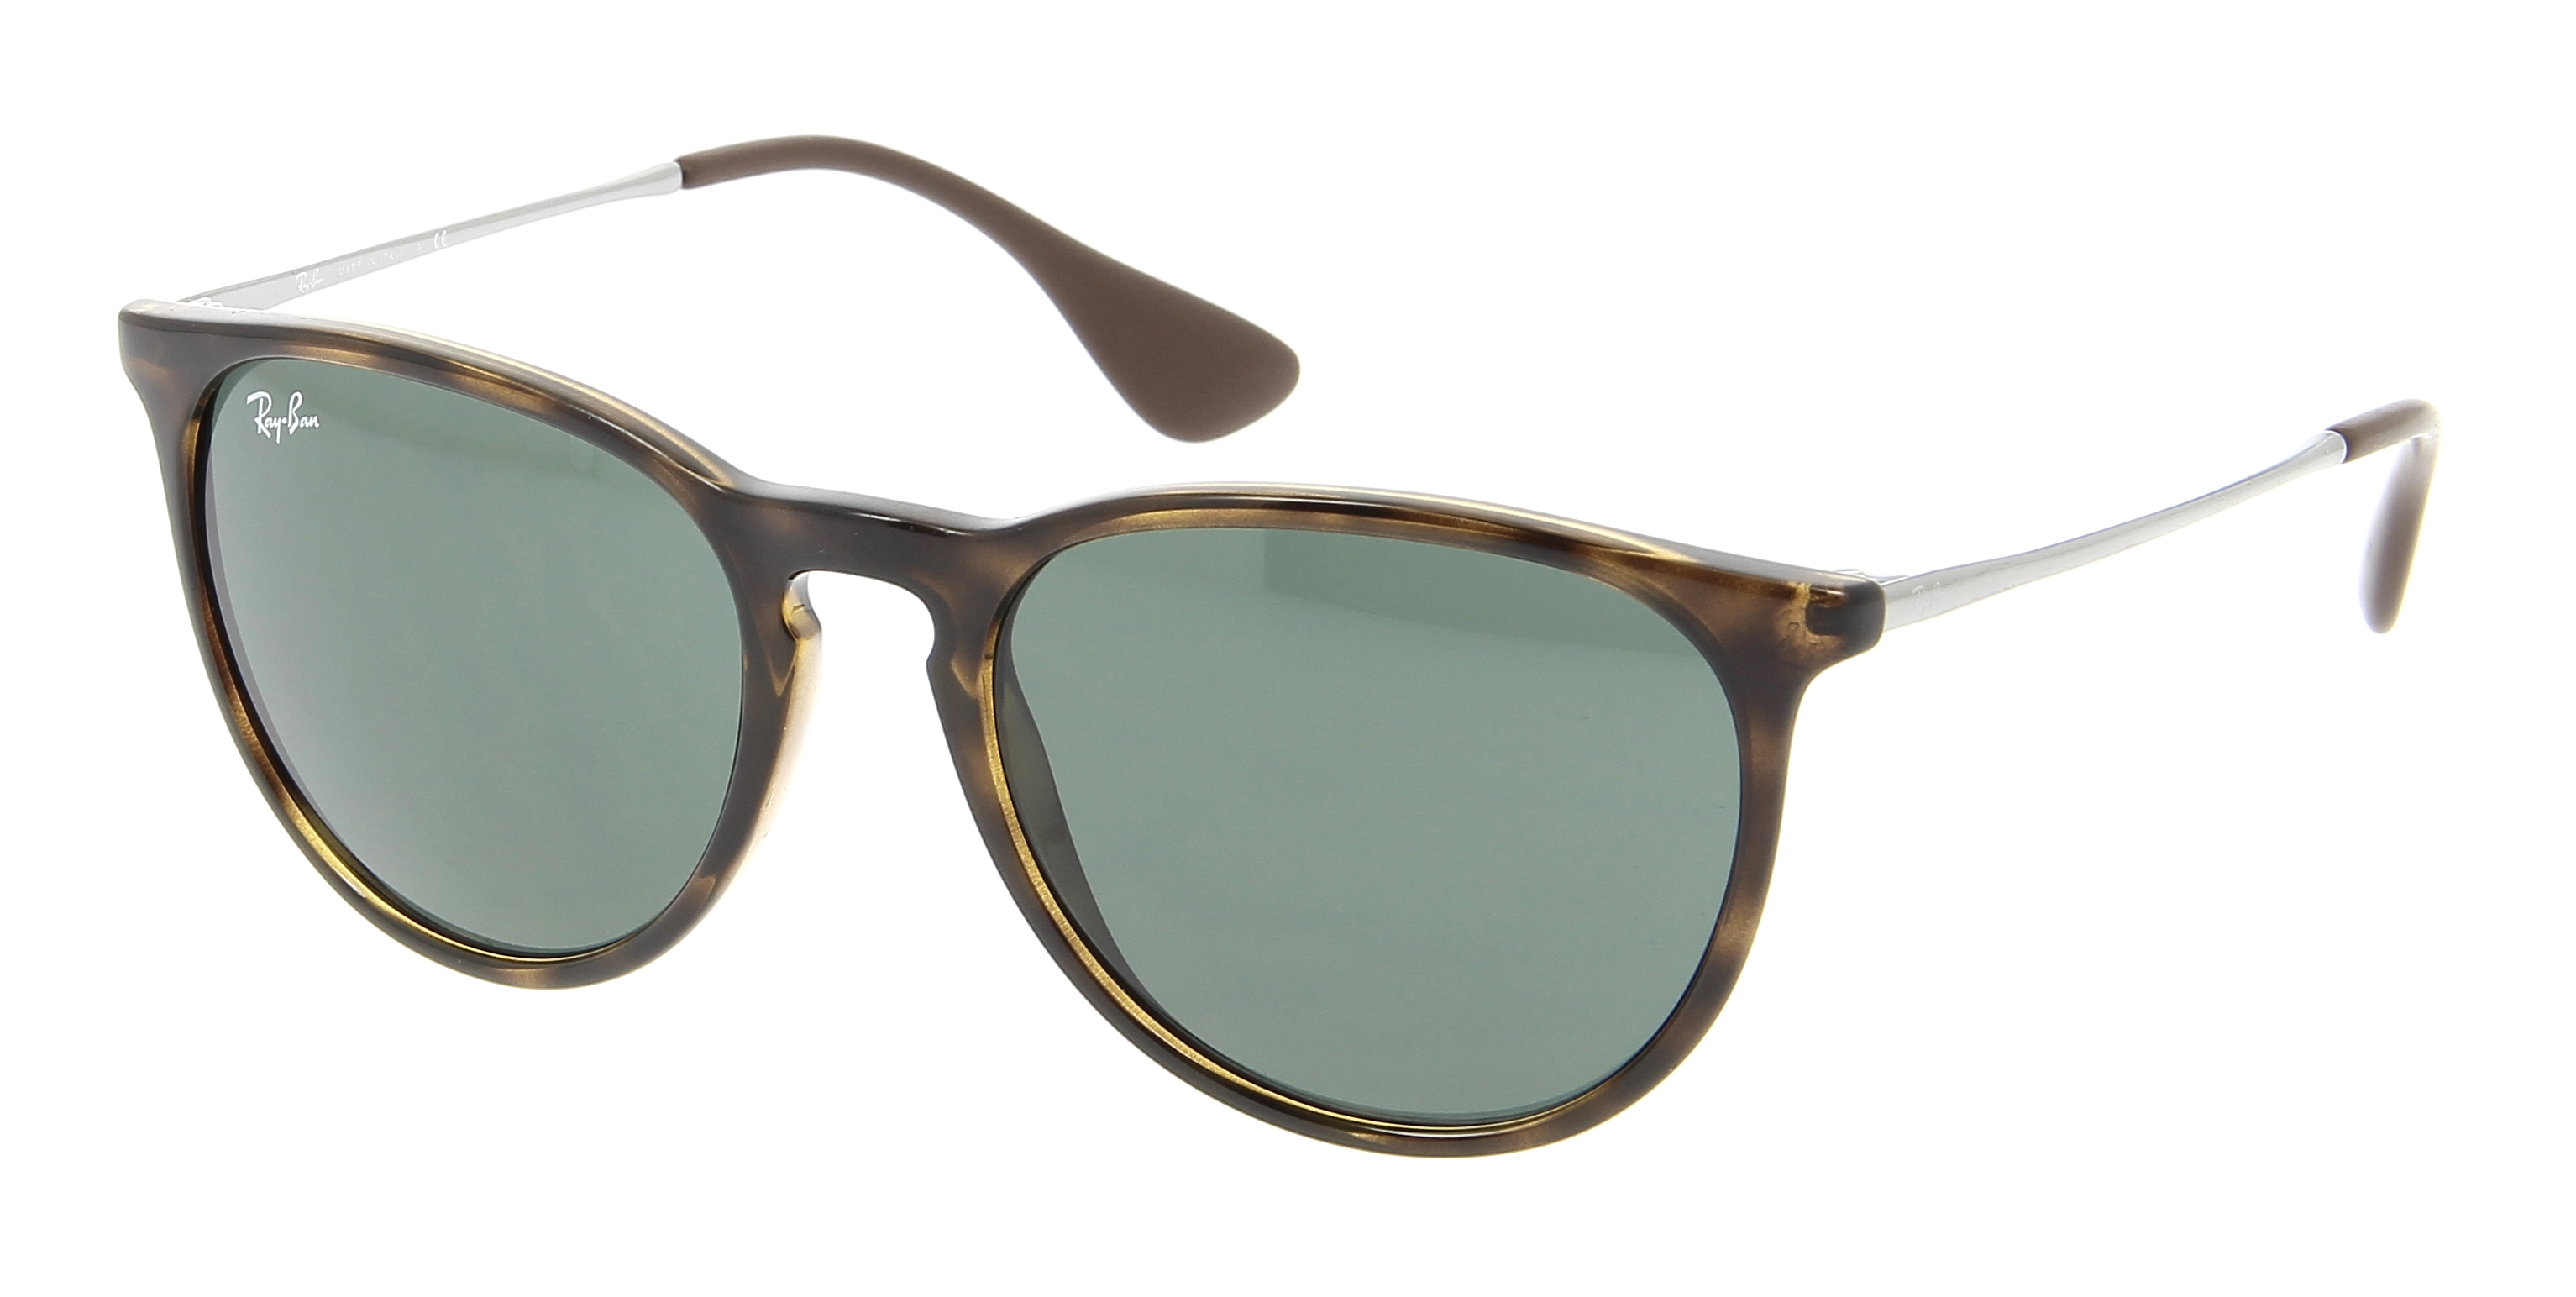 Lunettes de vue RAY BAN RX 5228 2126 53 17 5132 w400 ray ban homme optical  center ... 2676d93e989d